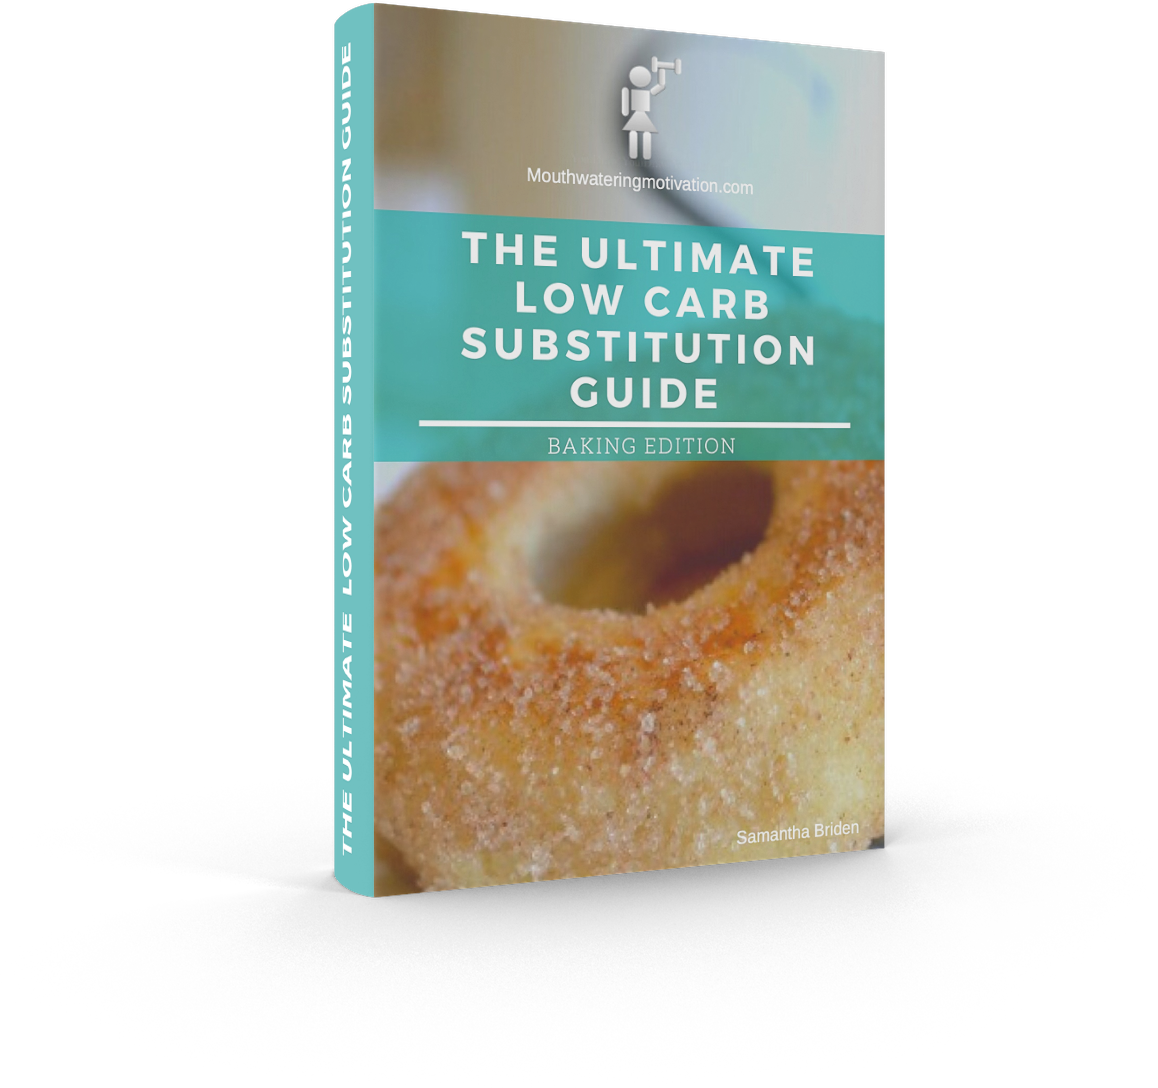 The Ultimate Low Carb Substitution Guide – Baking Edition